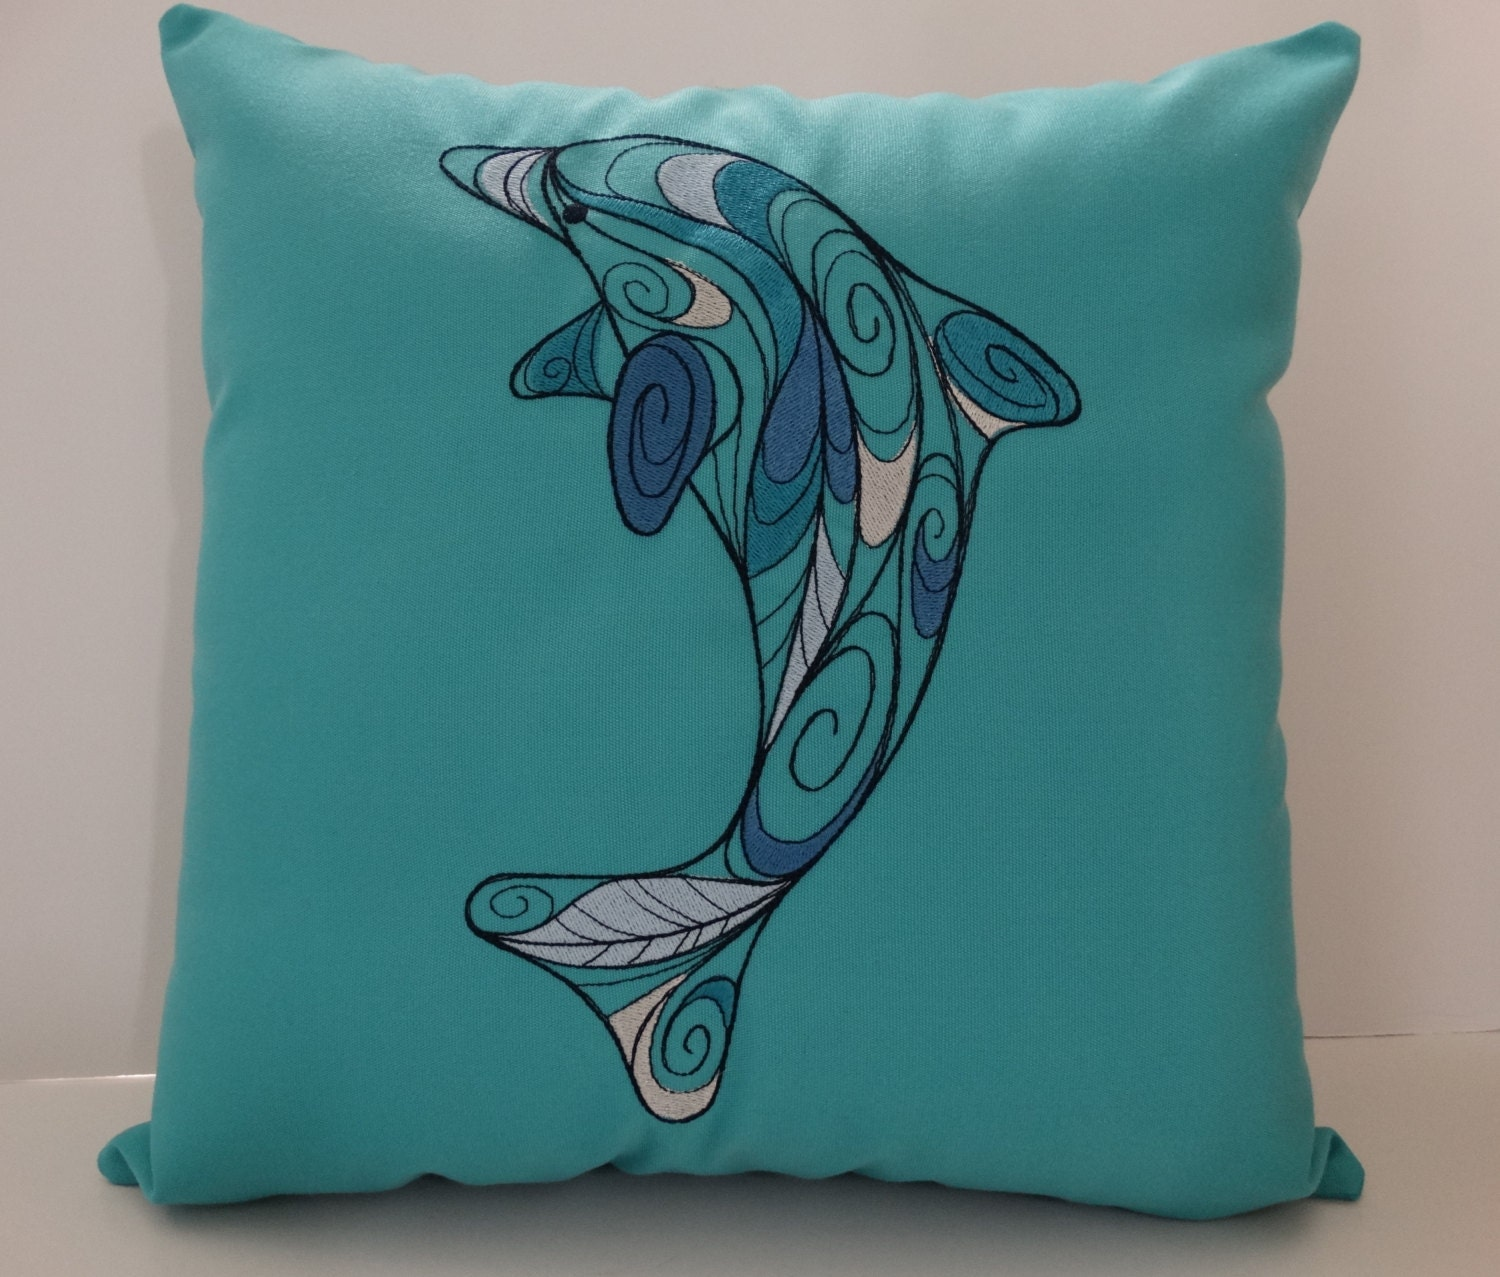 beach blanket cushion chinese pillow gallery inspired furniture pillows about shocking shop facts throw